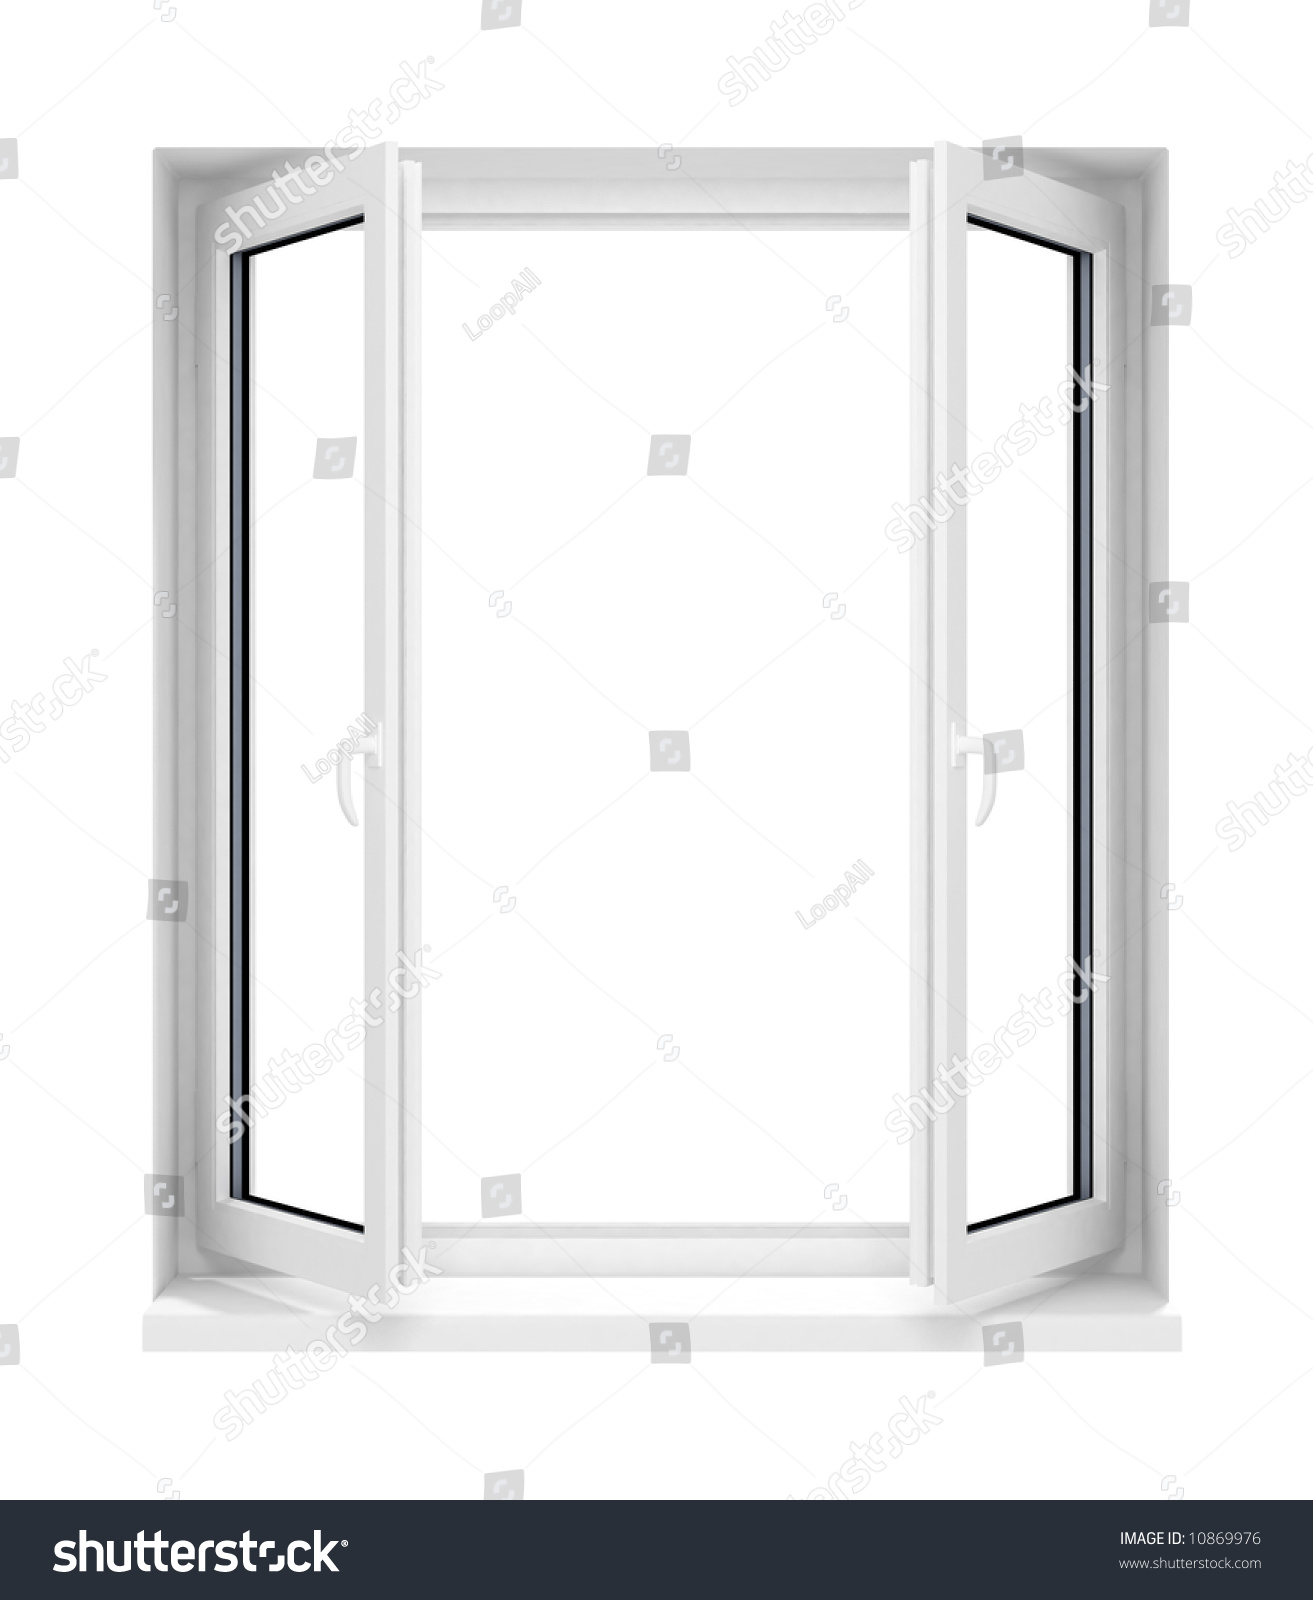 New opened plastic glass window frame stock illustration for Window plastic